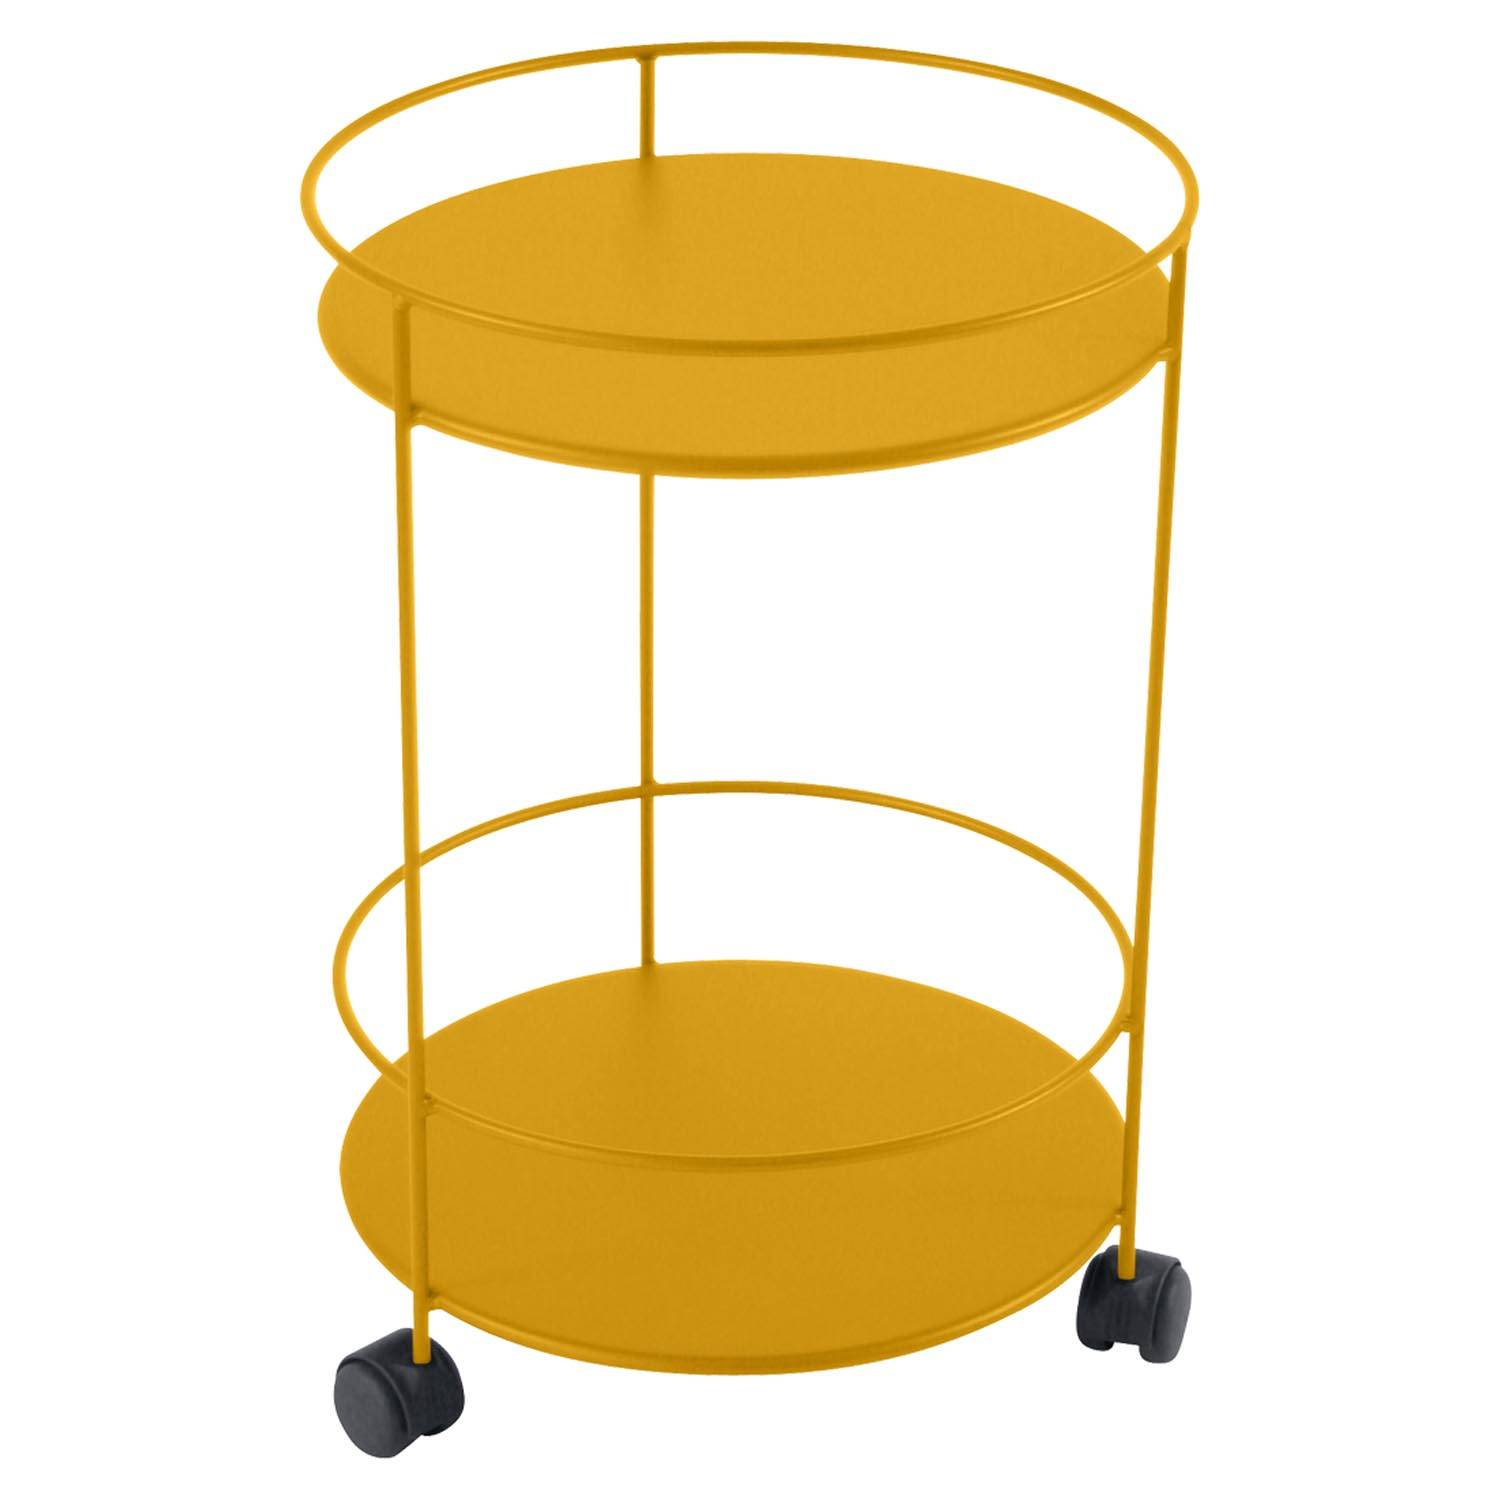 Fermob Small Table Perforated Ø40, Honey